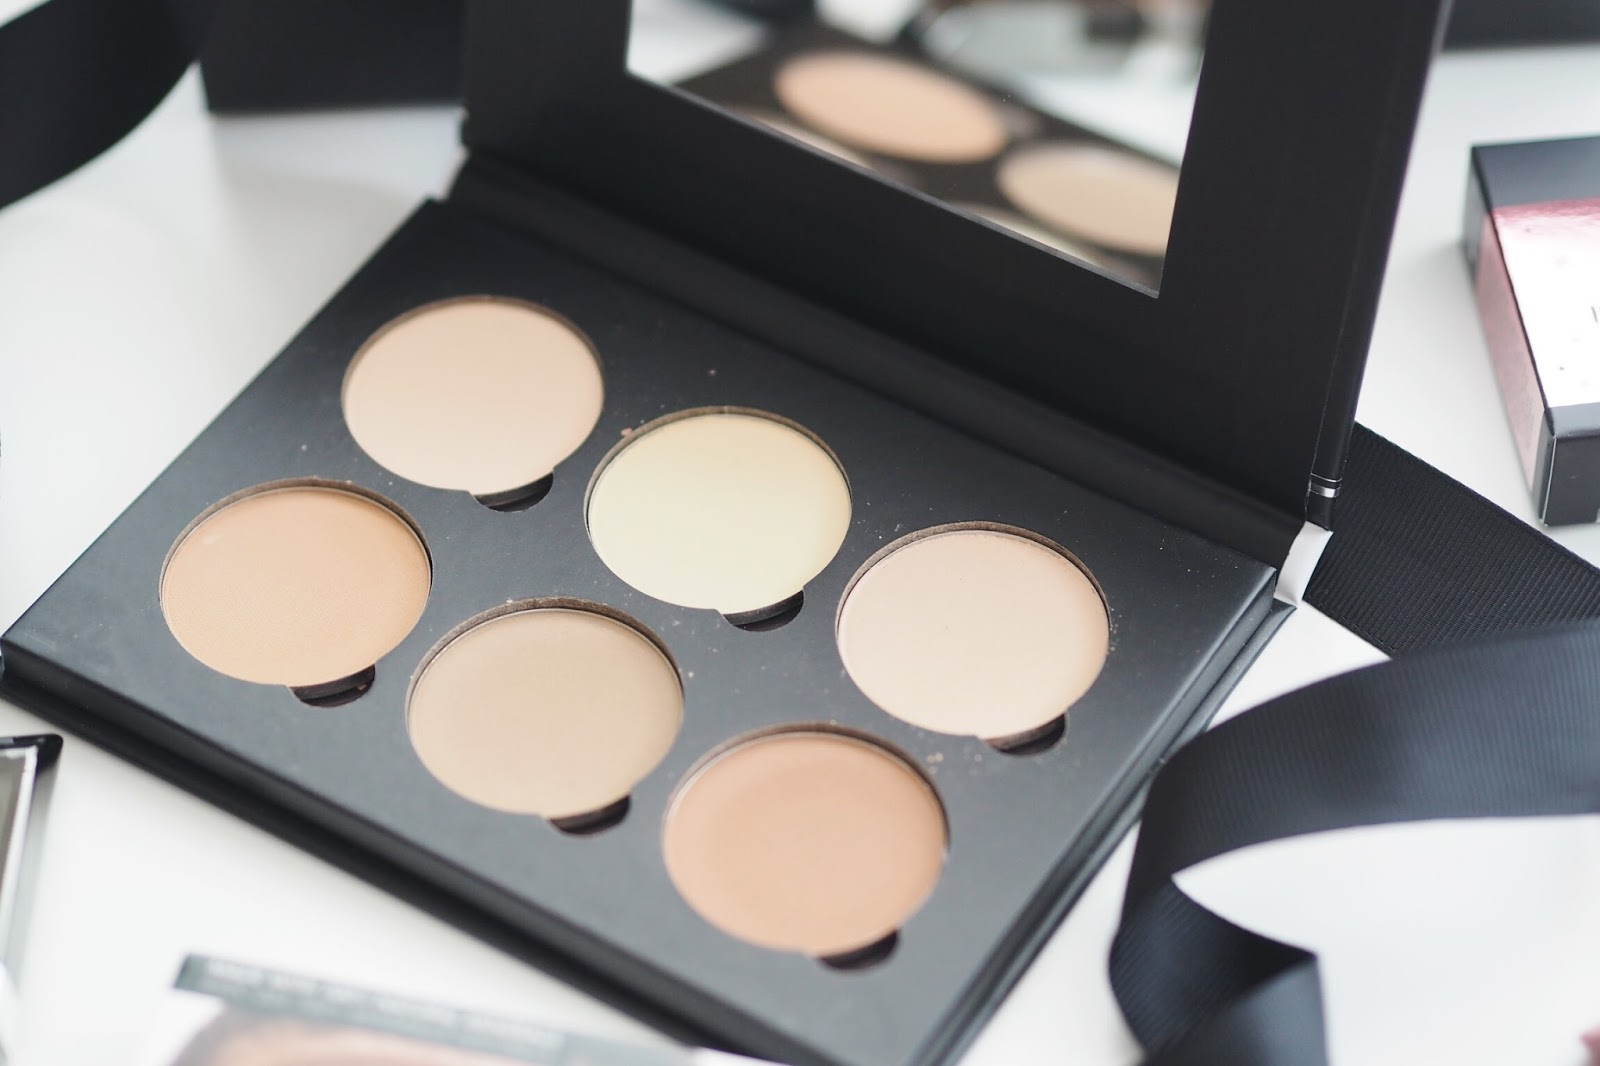 Cohorted beauty box review Bella Pierre contour palette